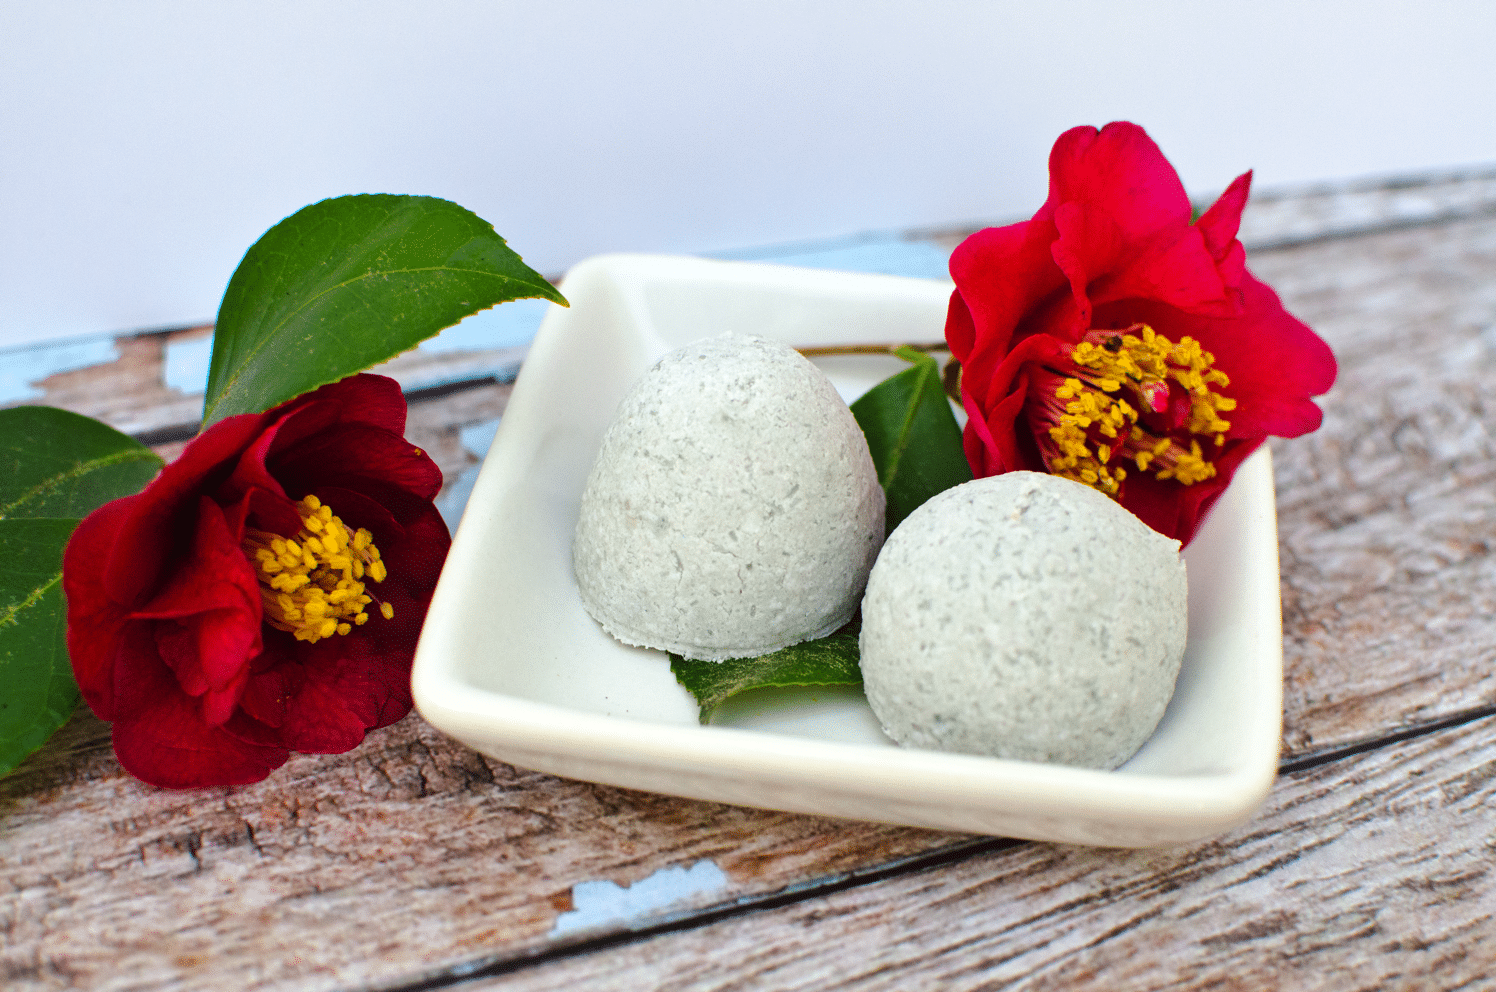 Homemade Fragrant Fizzie Bath Bombs for Mother's Day Lavender Joy